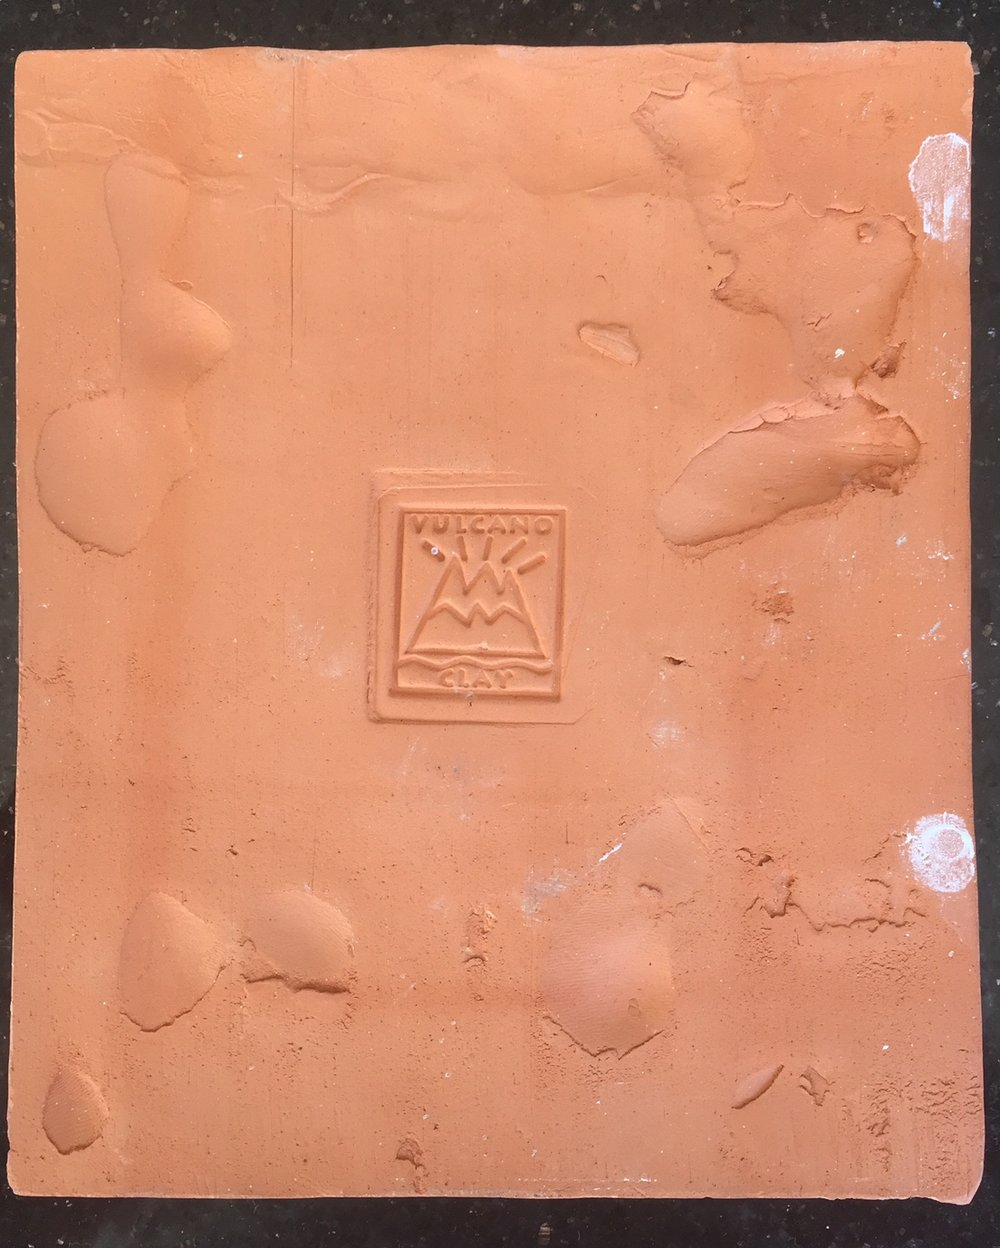 Hand Made - Back of Tile produced Vulcano Clay